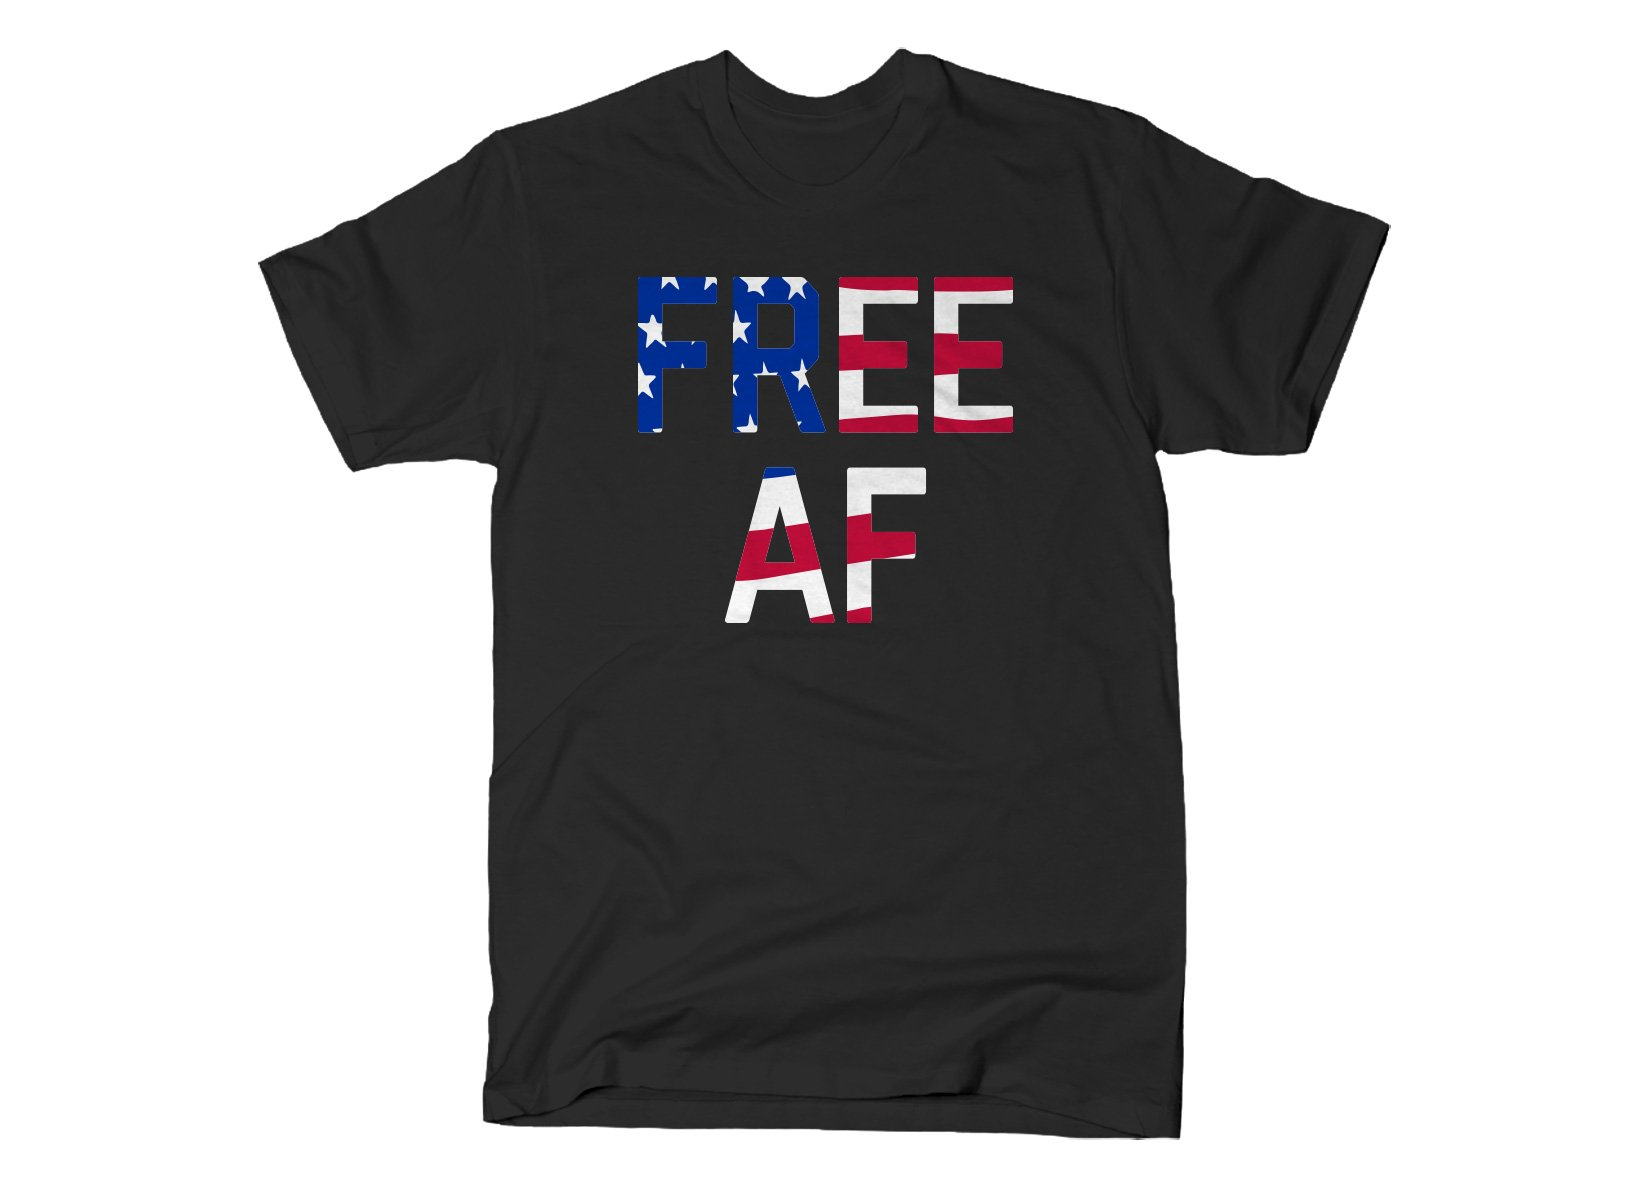 Free AF on Mens T-Shirt